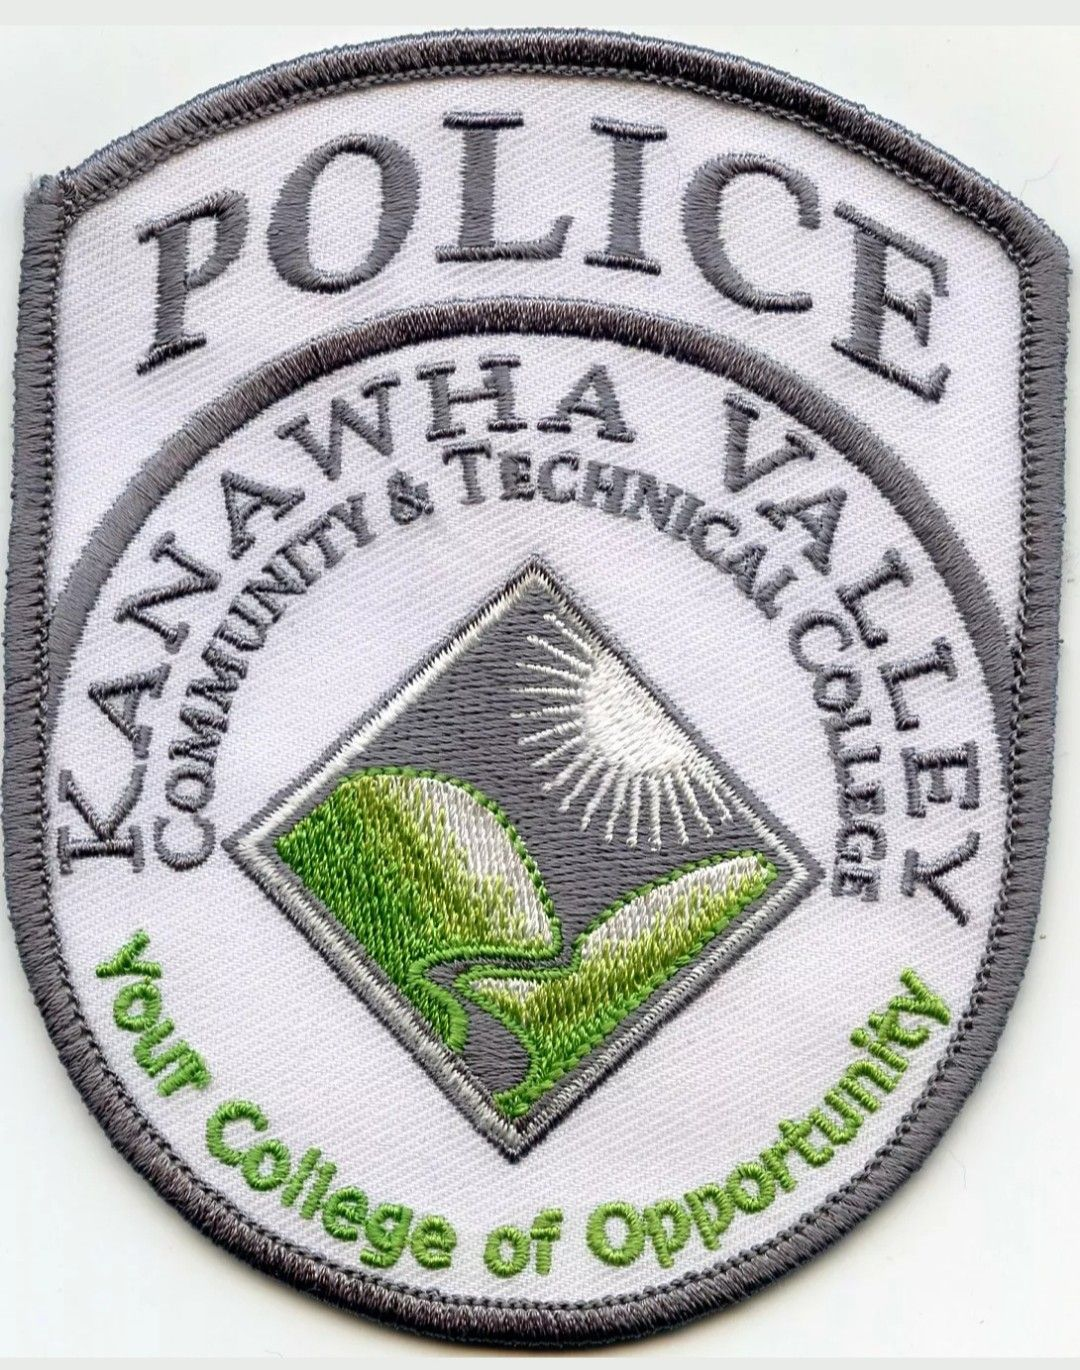 Kanawha Valley community and technical college PD Police